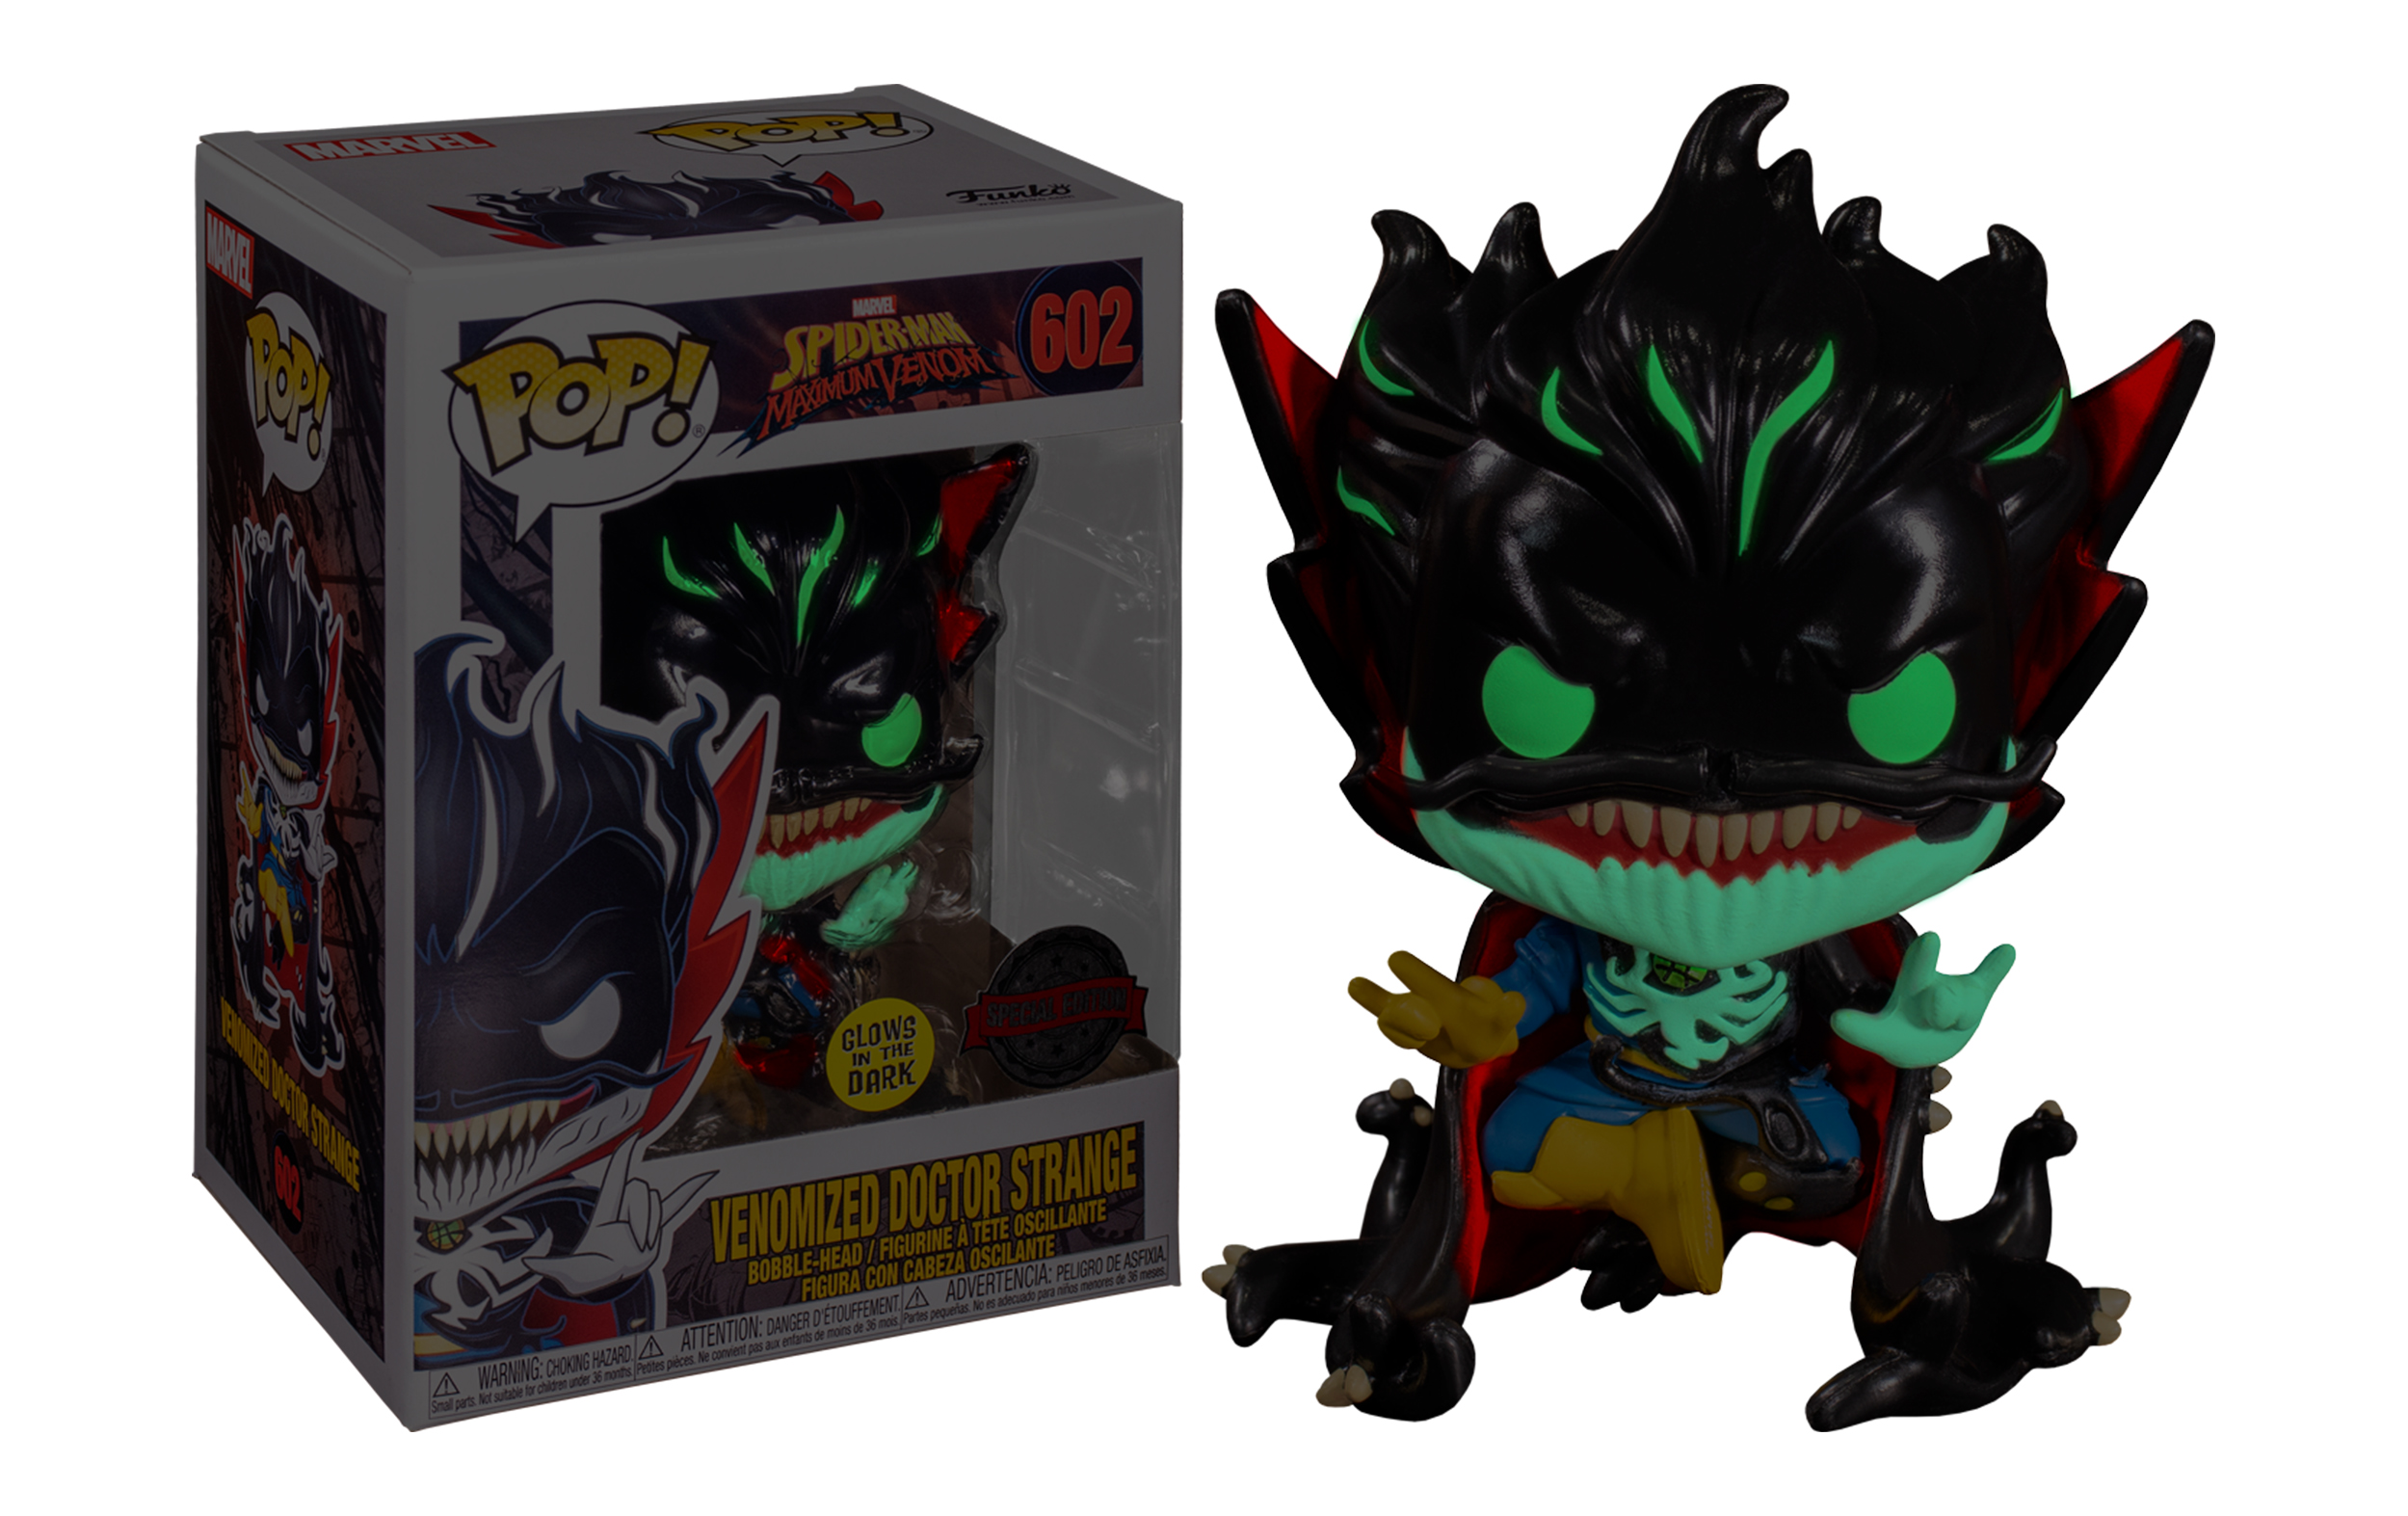 Marvel Venomized Doctor Strange GITD 602 Funko POP Vinyl Figure